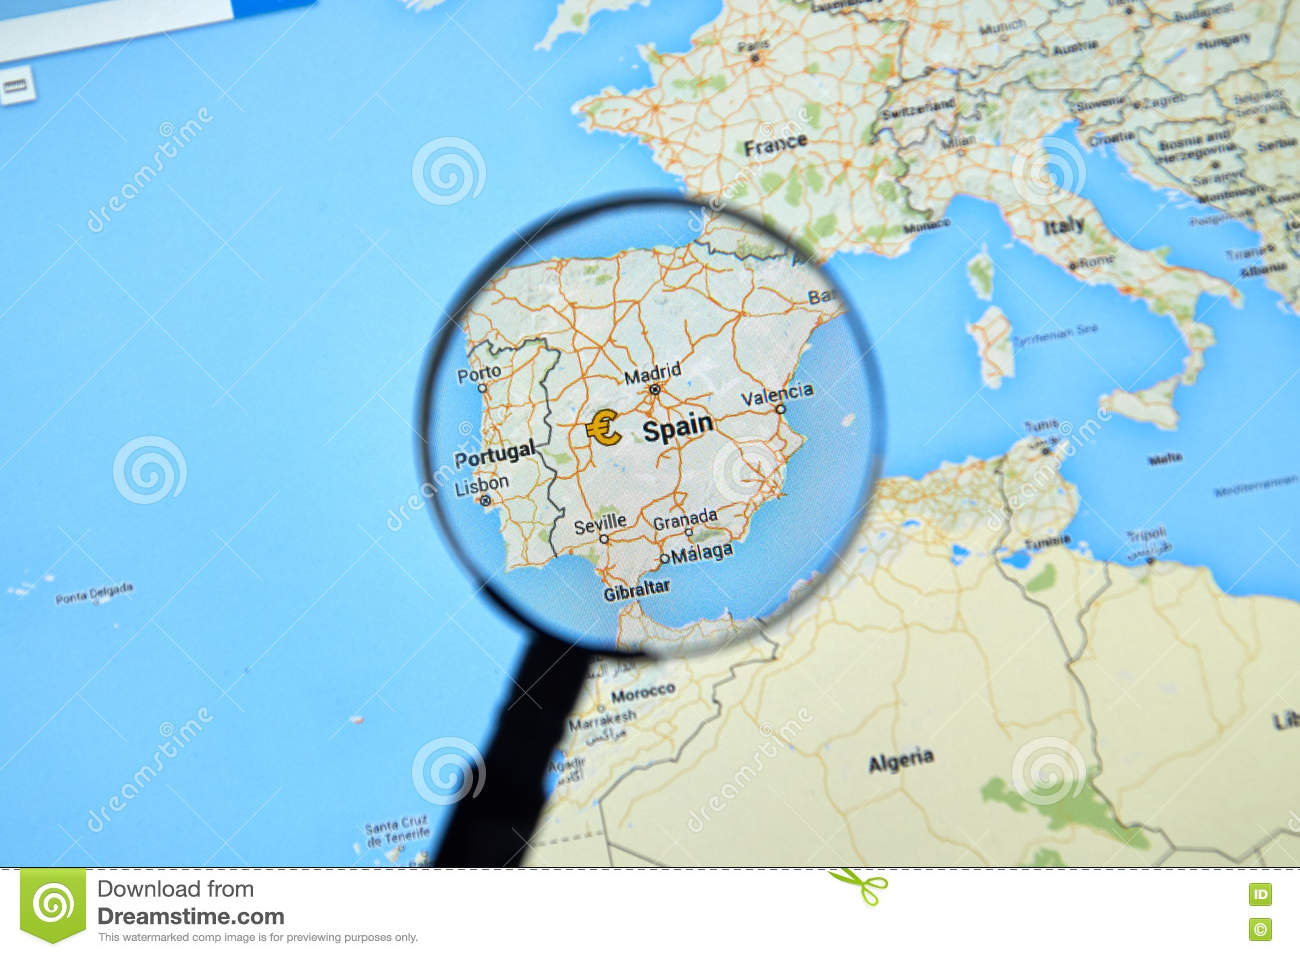 Map Of Spain Google Maps.Spain On Google Maps Editorial Stock Image Image Of Canada 73615669